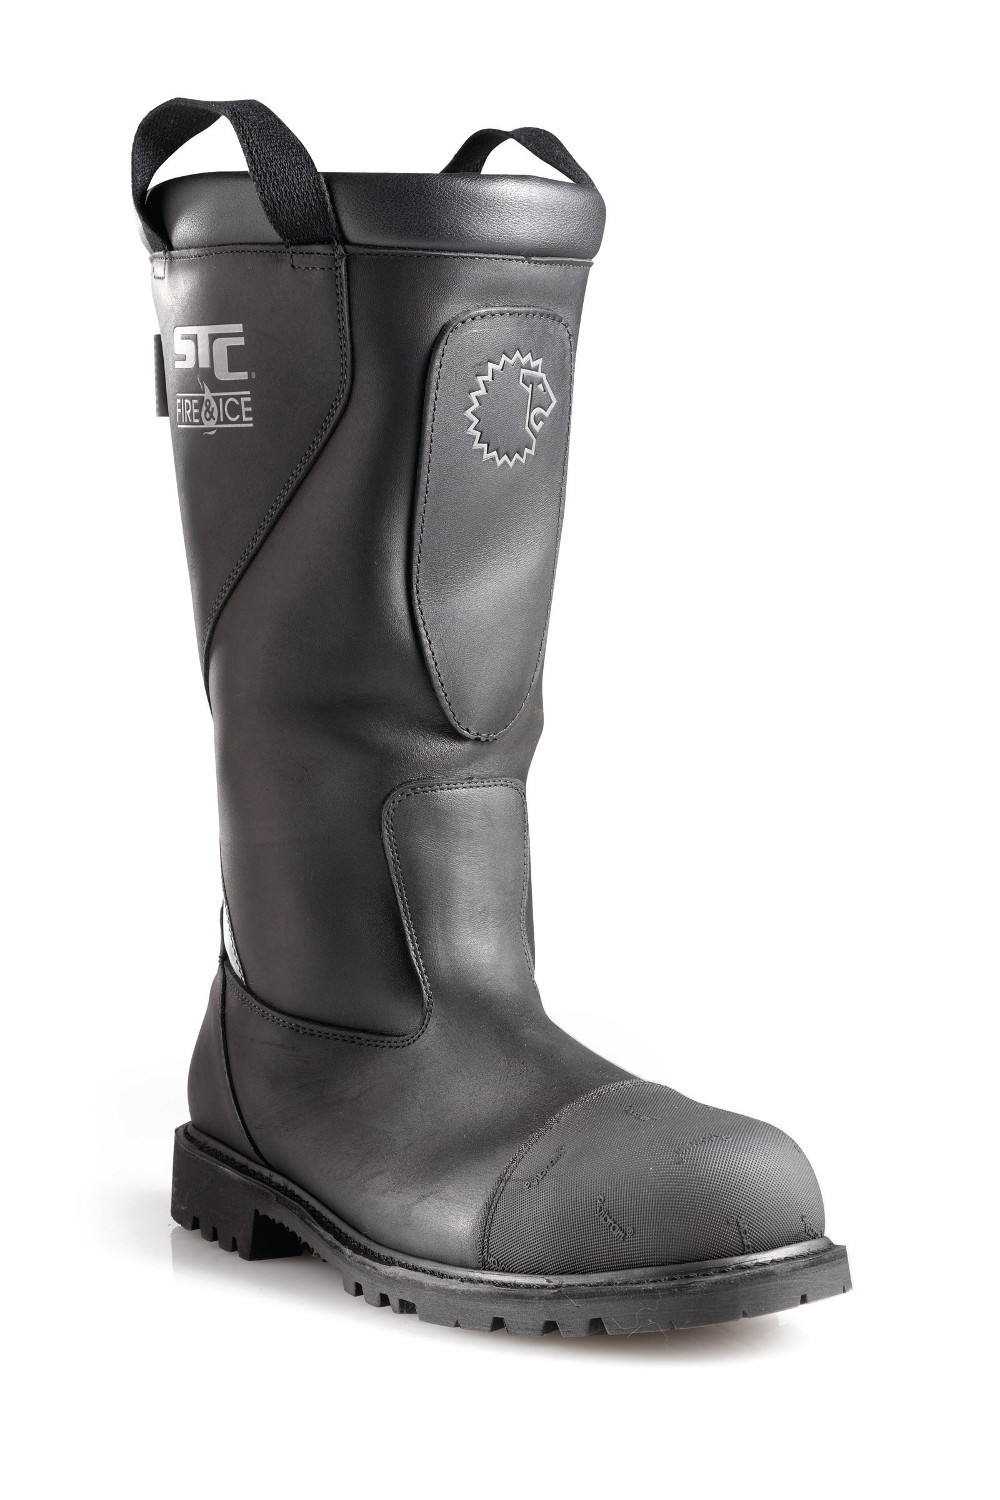 PULL-ON, SLIP-RESISTANT FIREFIGHTER BOOTS